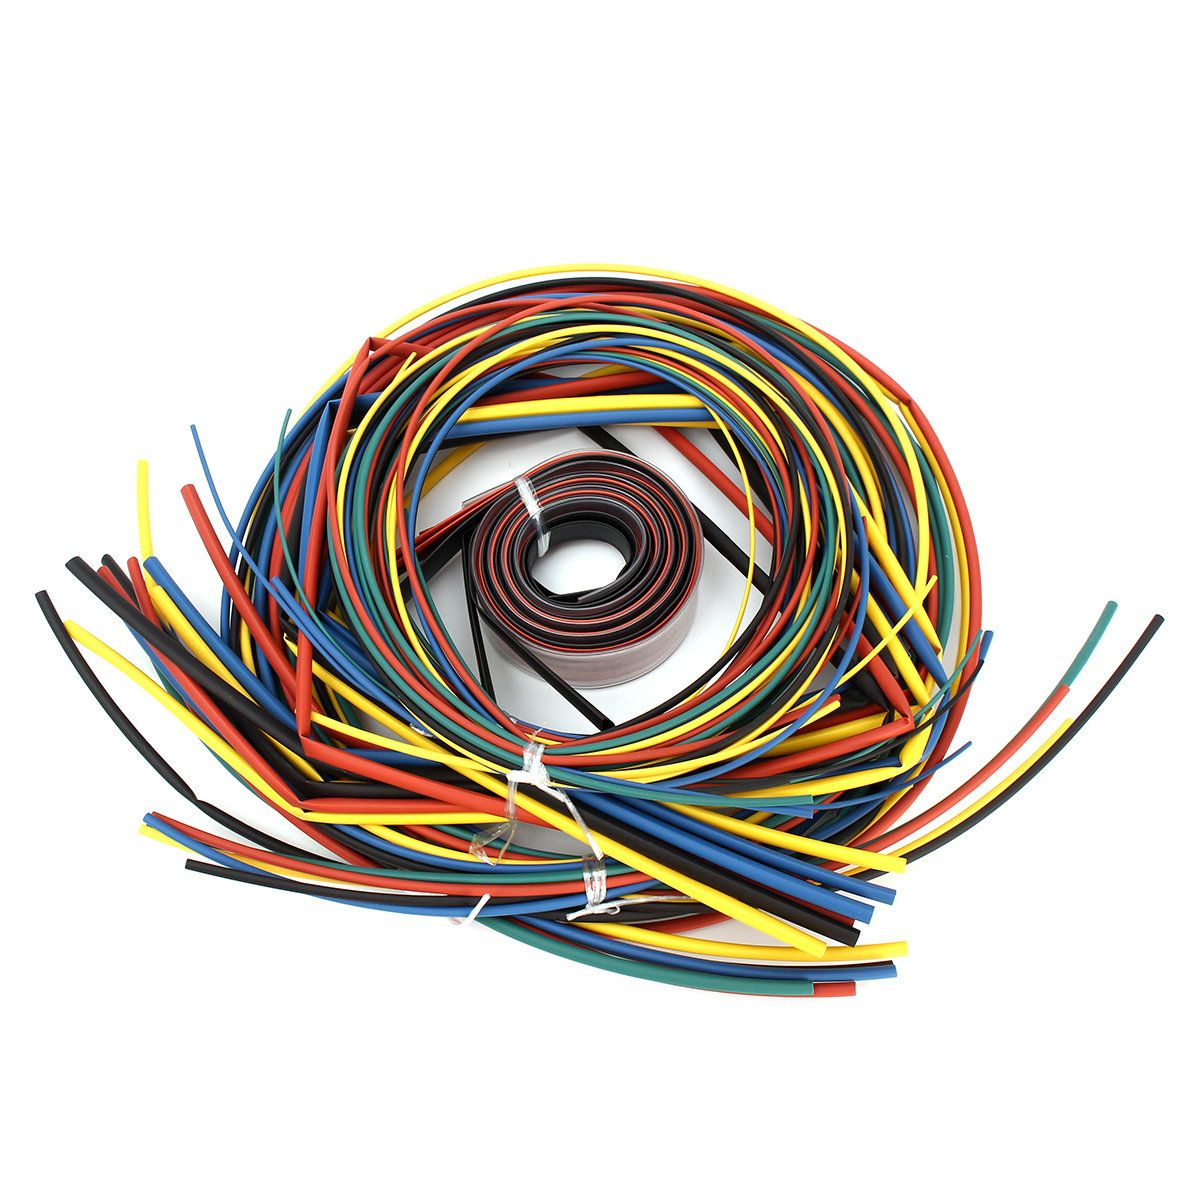 55m Heat Shrinkable Cable Assorted Tubing Wrap Electrical Connection ...